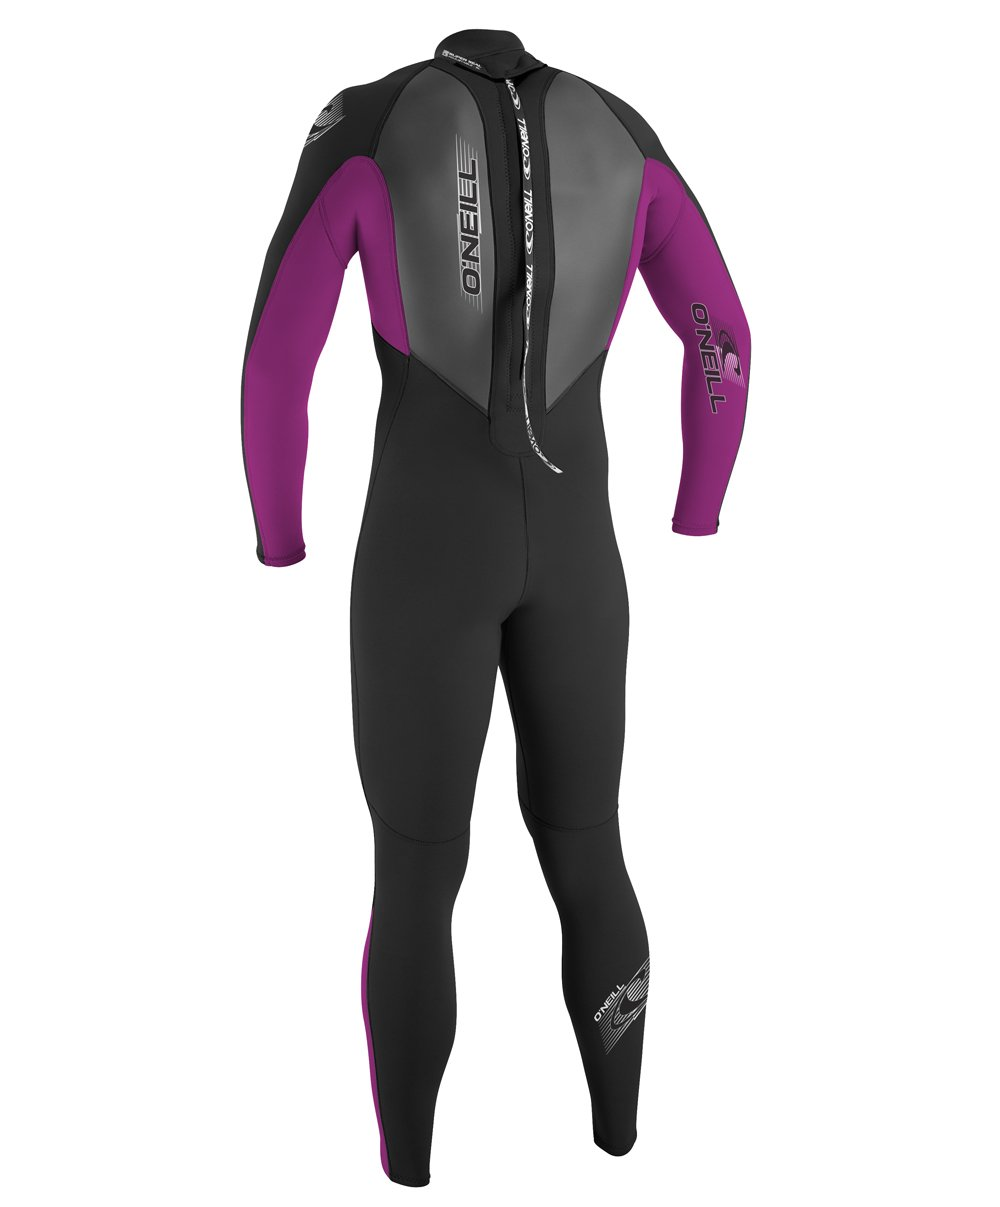 O'Neill Youth Reactor 3/2mm Back Zip Full Wetsuit, Black/Pink/Graphite, 8 by O'Neill Wetsuits (Image #3)